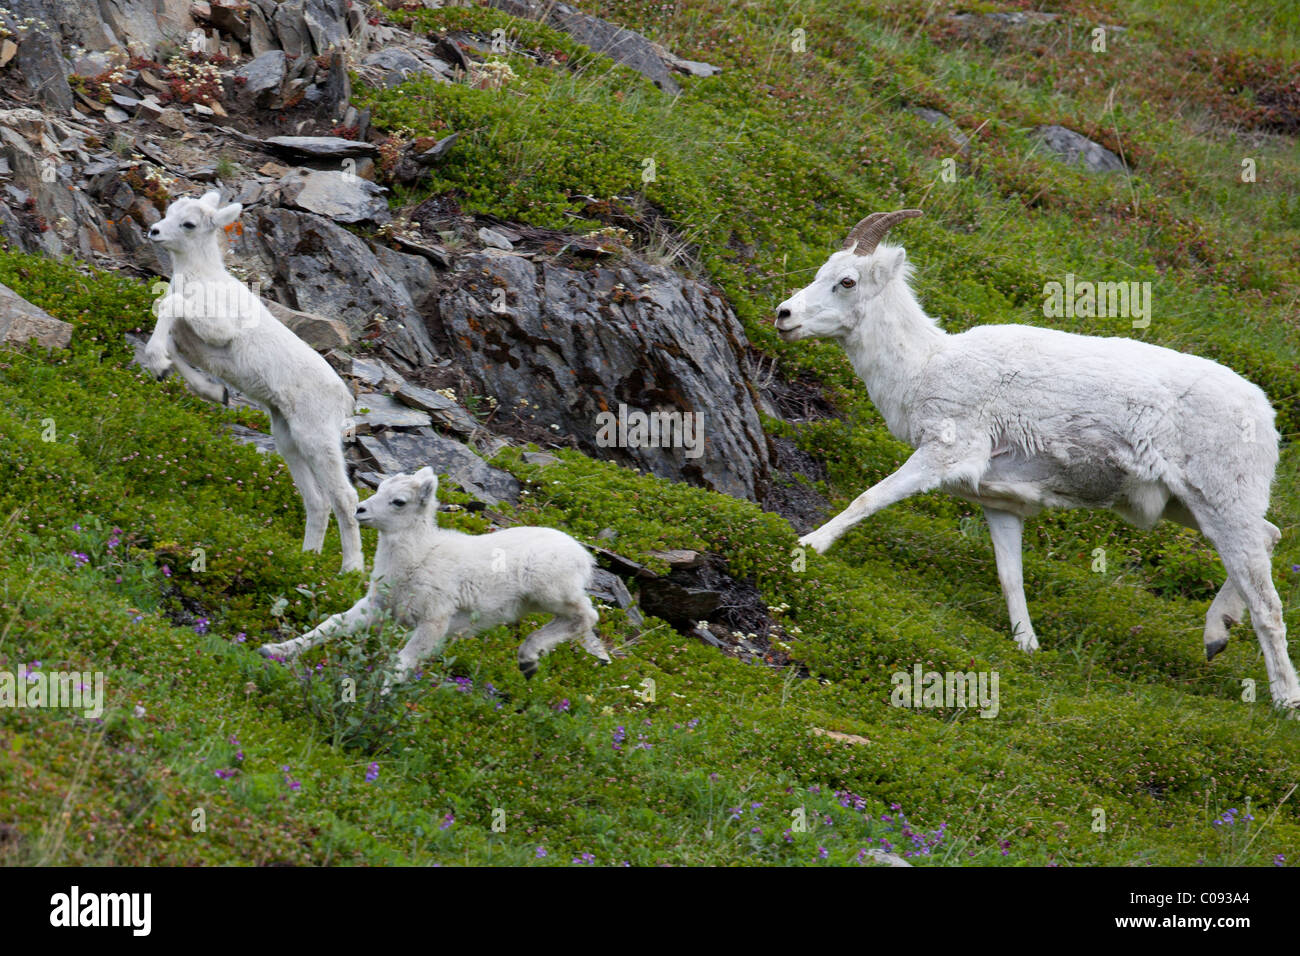 A Dall sheep ewe and lambs run through a green meadow at Windy Point along Seward Highway, Southcentral Alaska, - Stock Image